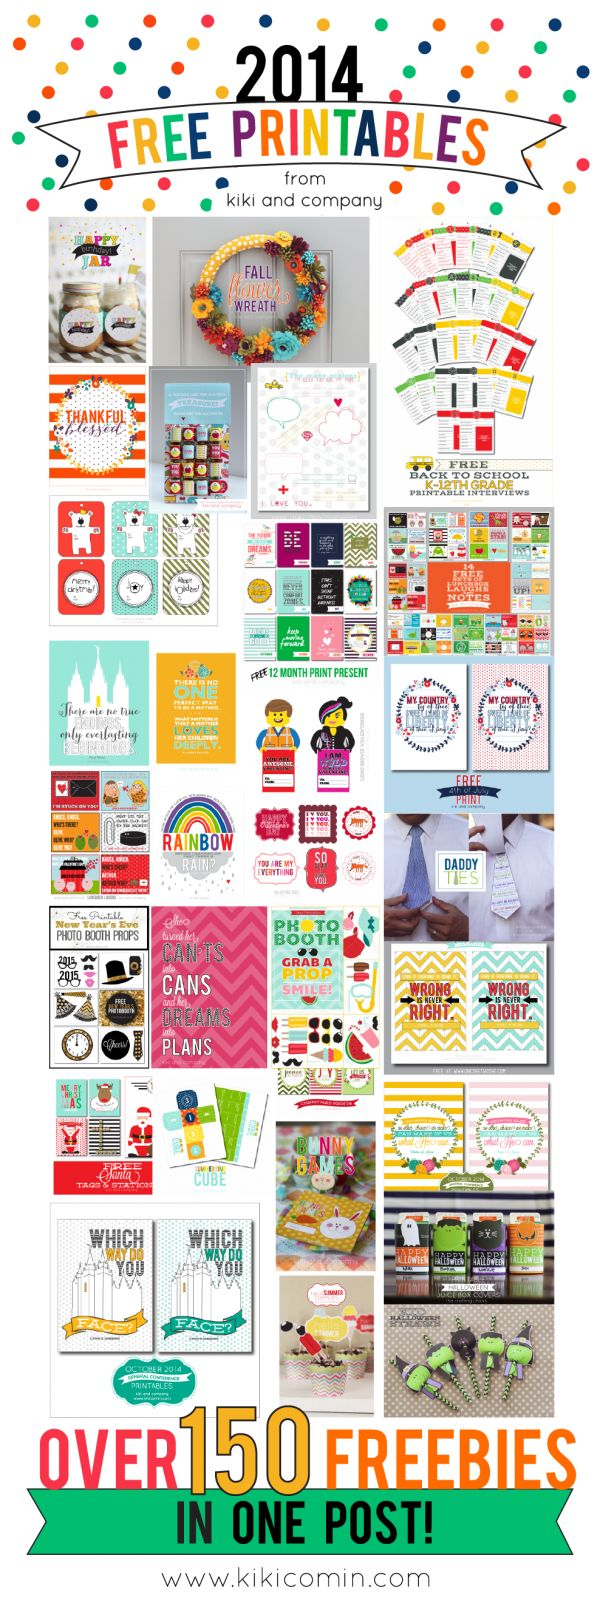 Pinning this one is a must! A Year of Free Printables // 2014 edition from kiki and company. OVER 150 FREE printables in ONE post. They cover every holiday plus everything in between and every single one is free.